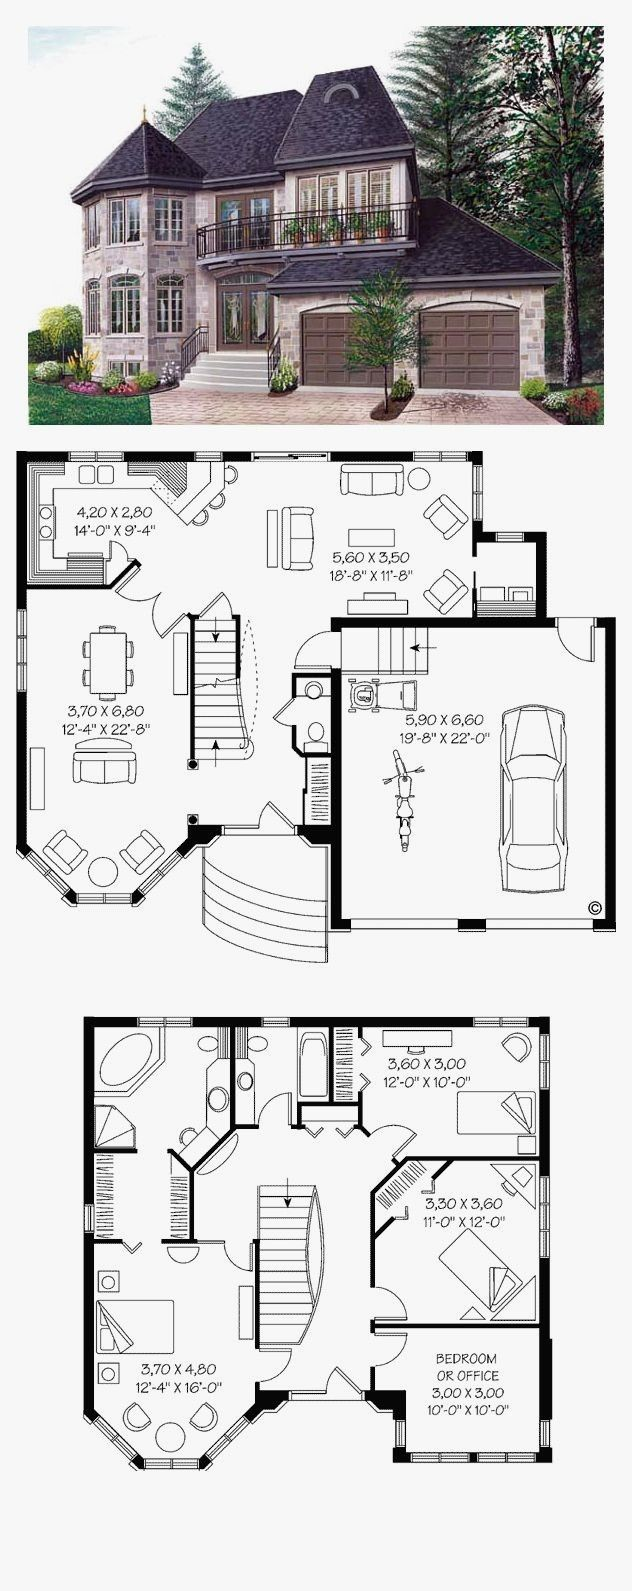 Victorian Style House Plan with 5 Bed 7 Bath 2 Car Garage